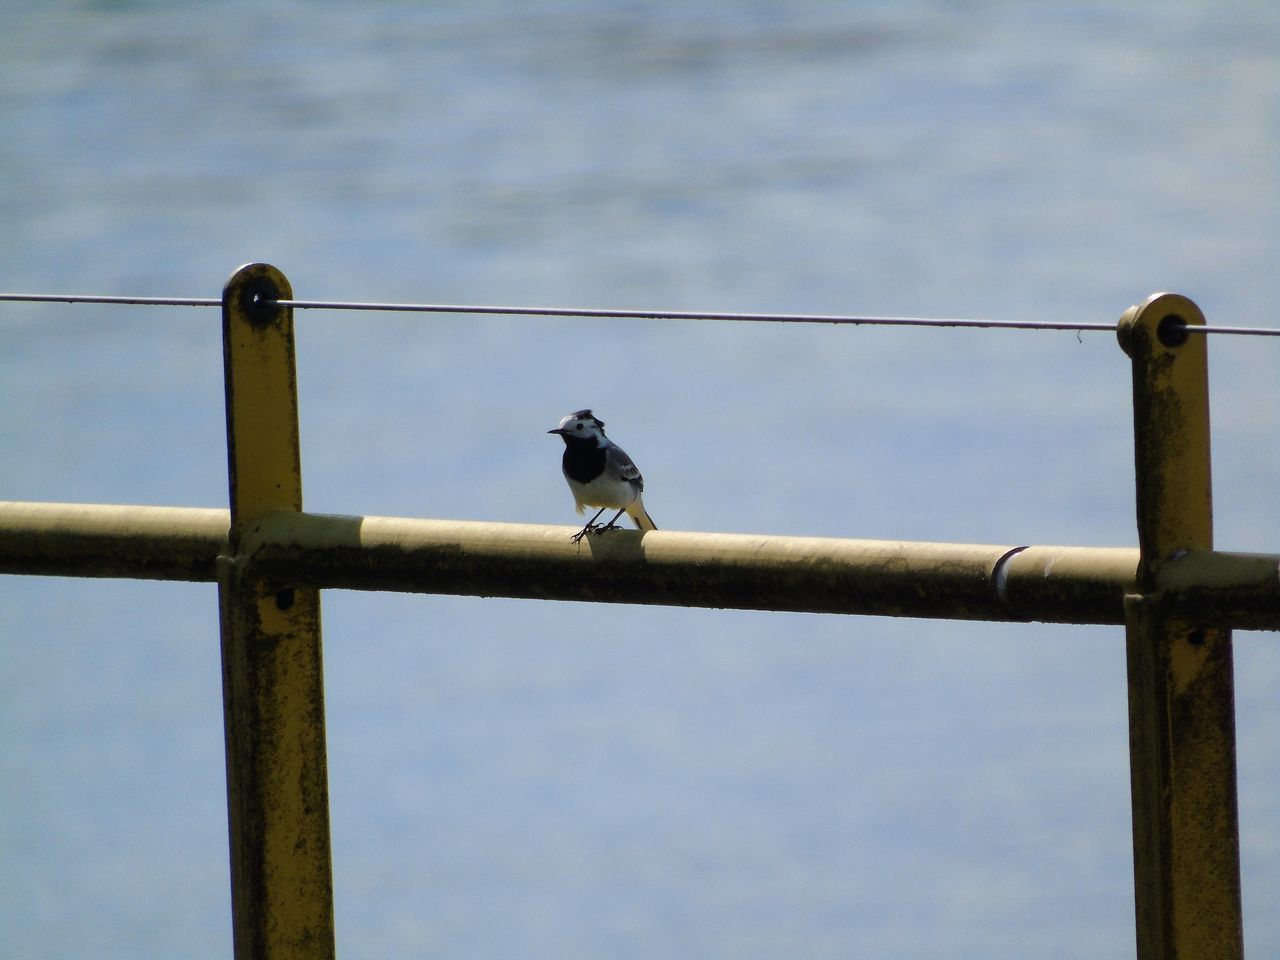 vertebrate, animal, animal themes, bird, animal wildlife, animals in the wild, perching, one animal, metal, day, focus on foreground, no people, outdoors, nature, railing, sky, cable, connection